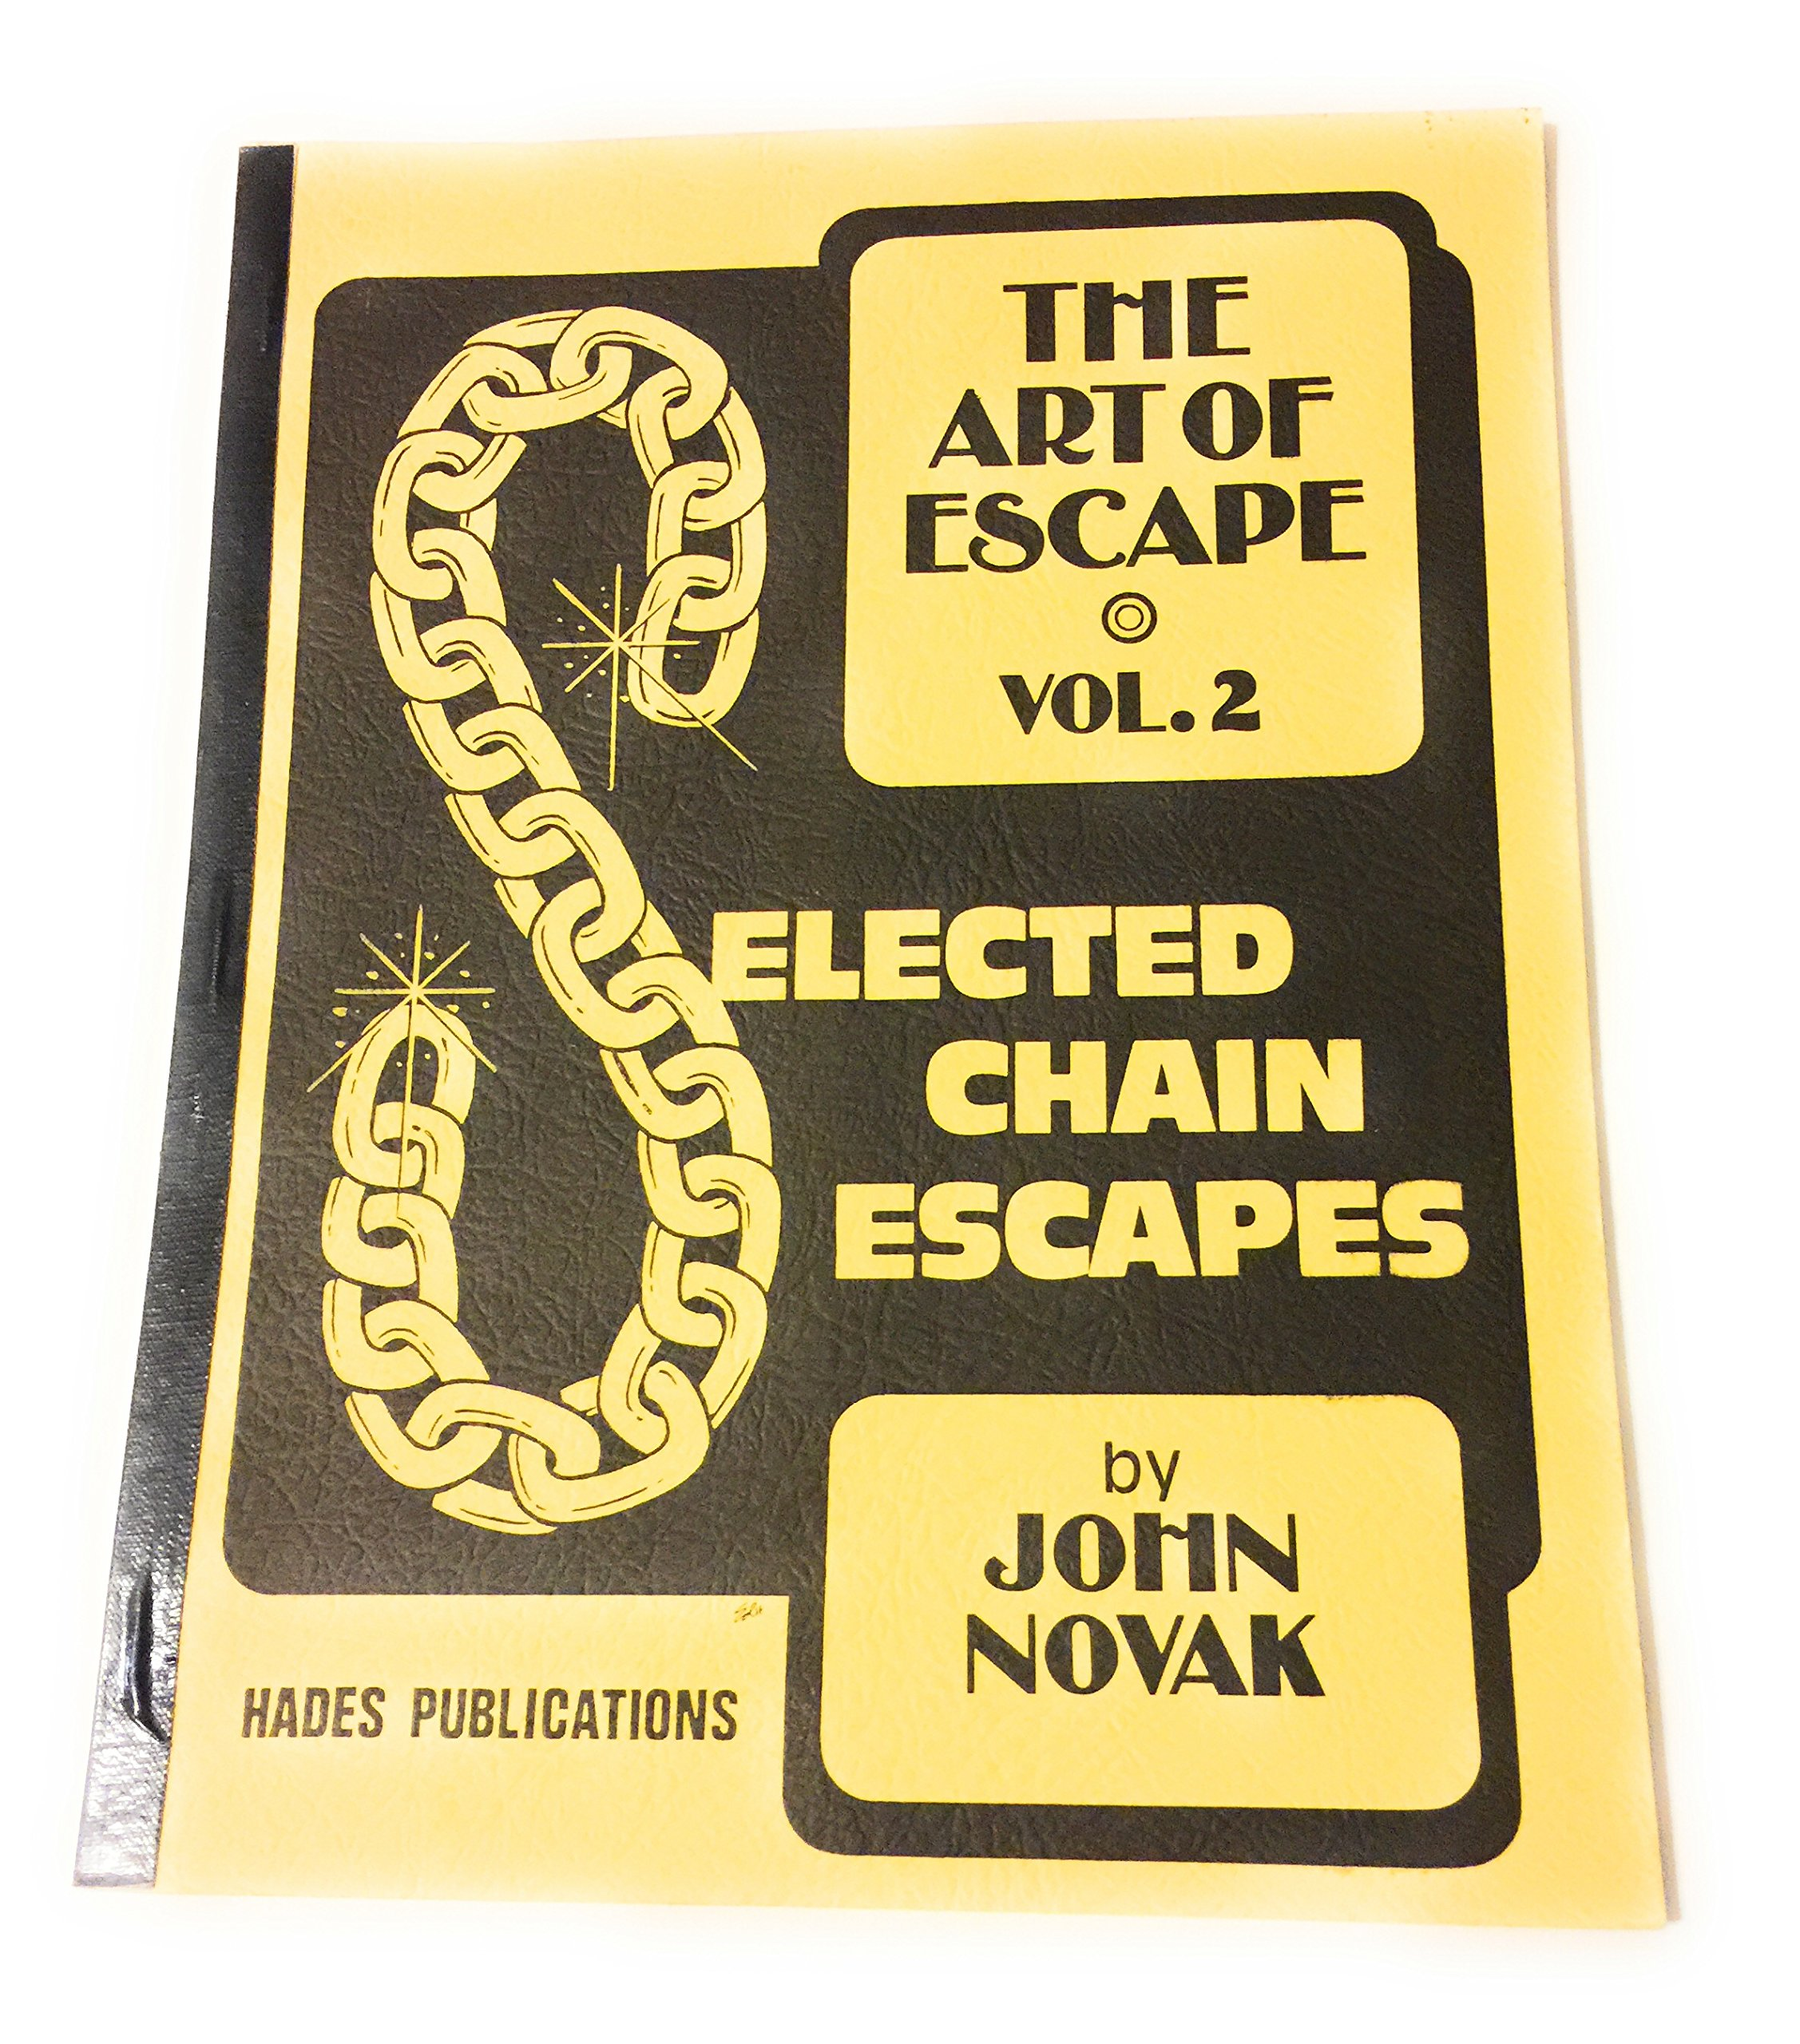 Selected Chain Escapes: The Art of Escape Volume 2 / Two